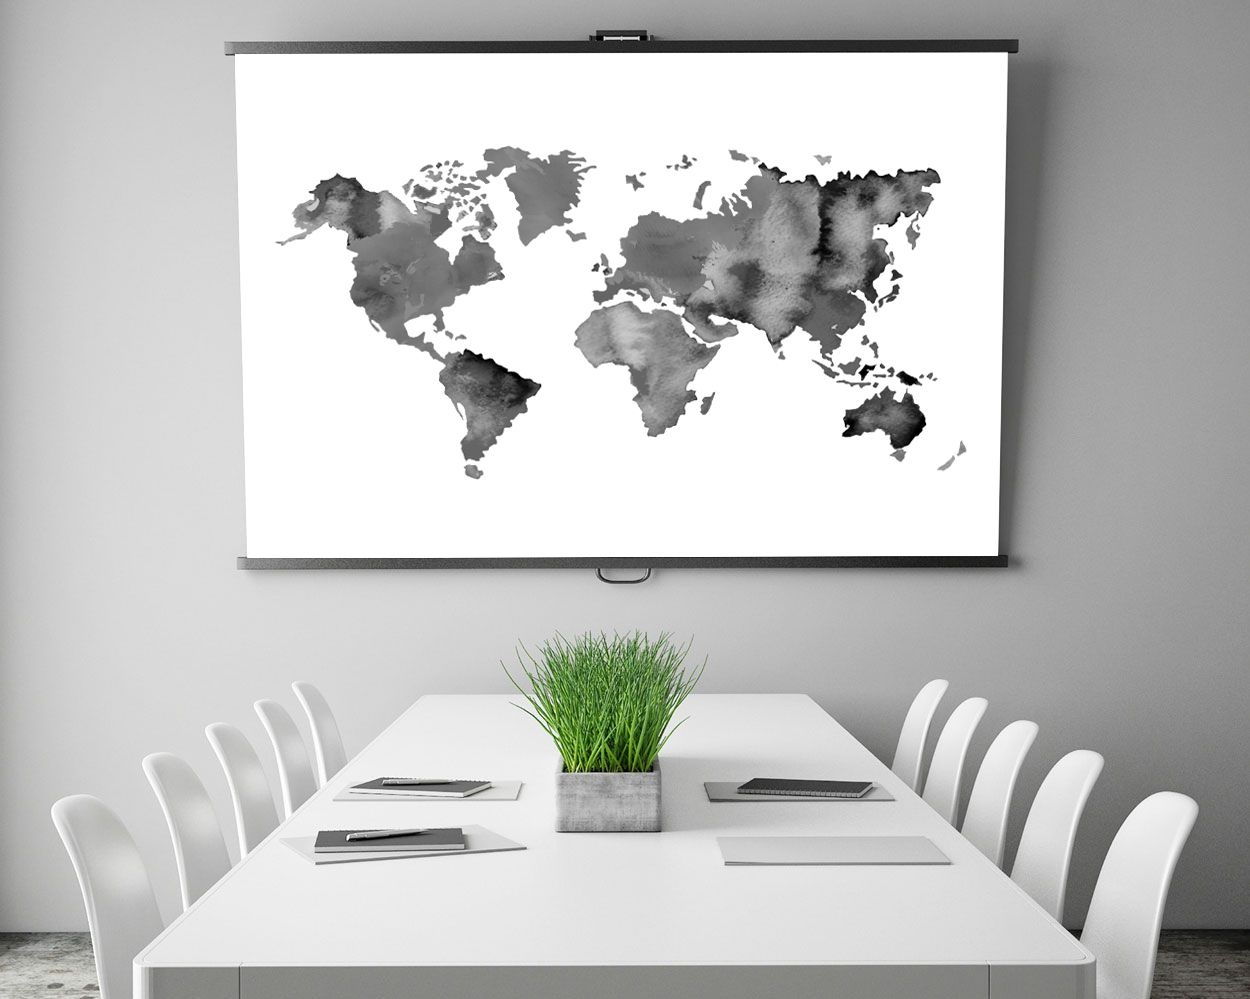 World map print large world map watercolor map black white world map print large world map watercolor map black white inspirational wall gumiabroncs Gallery